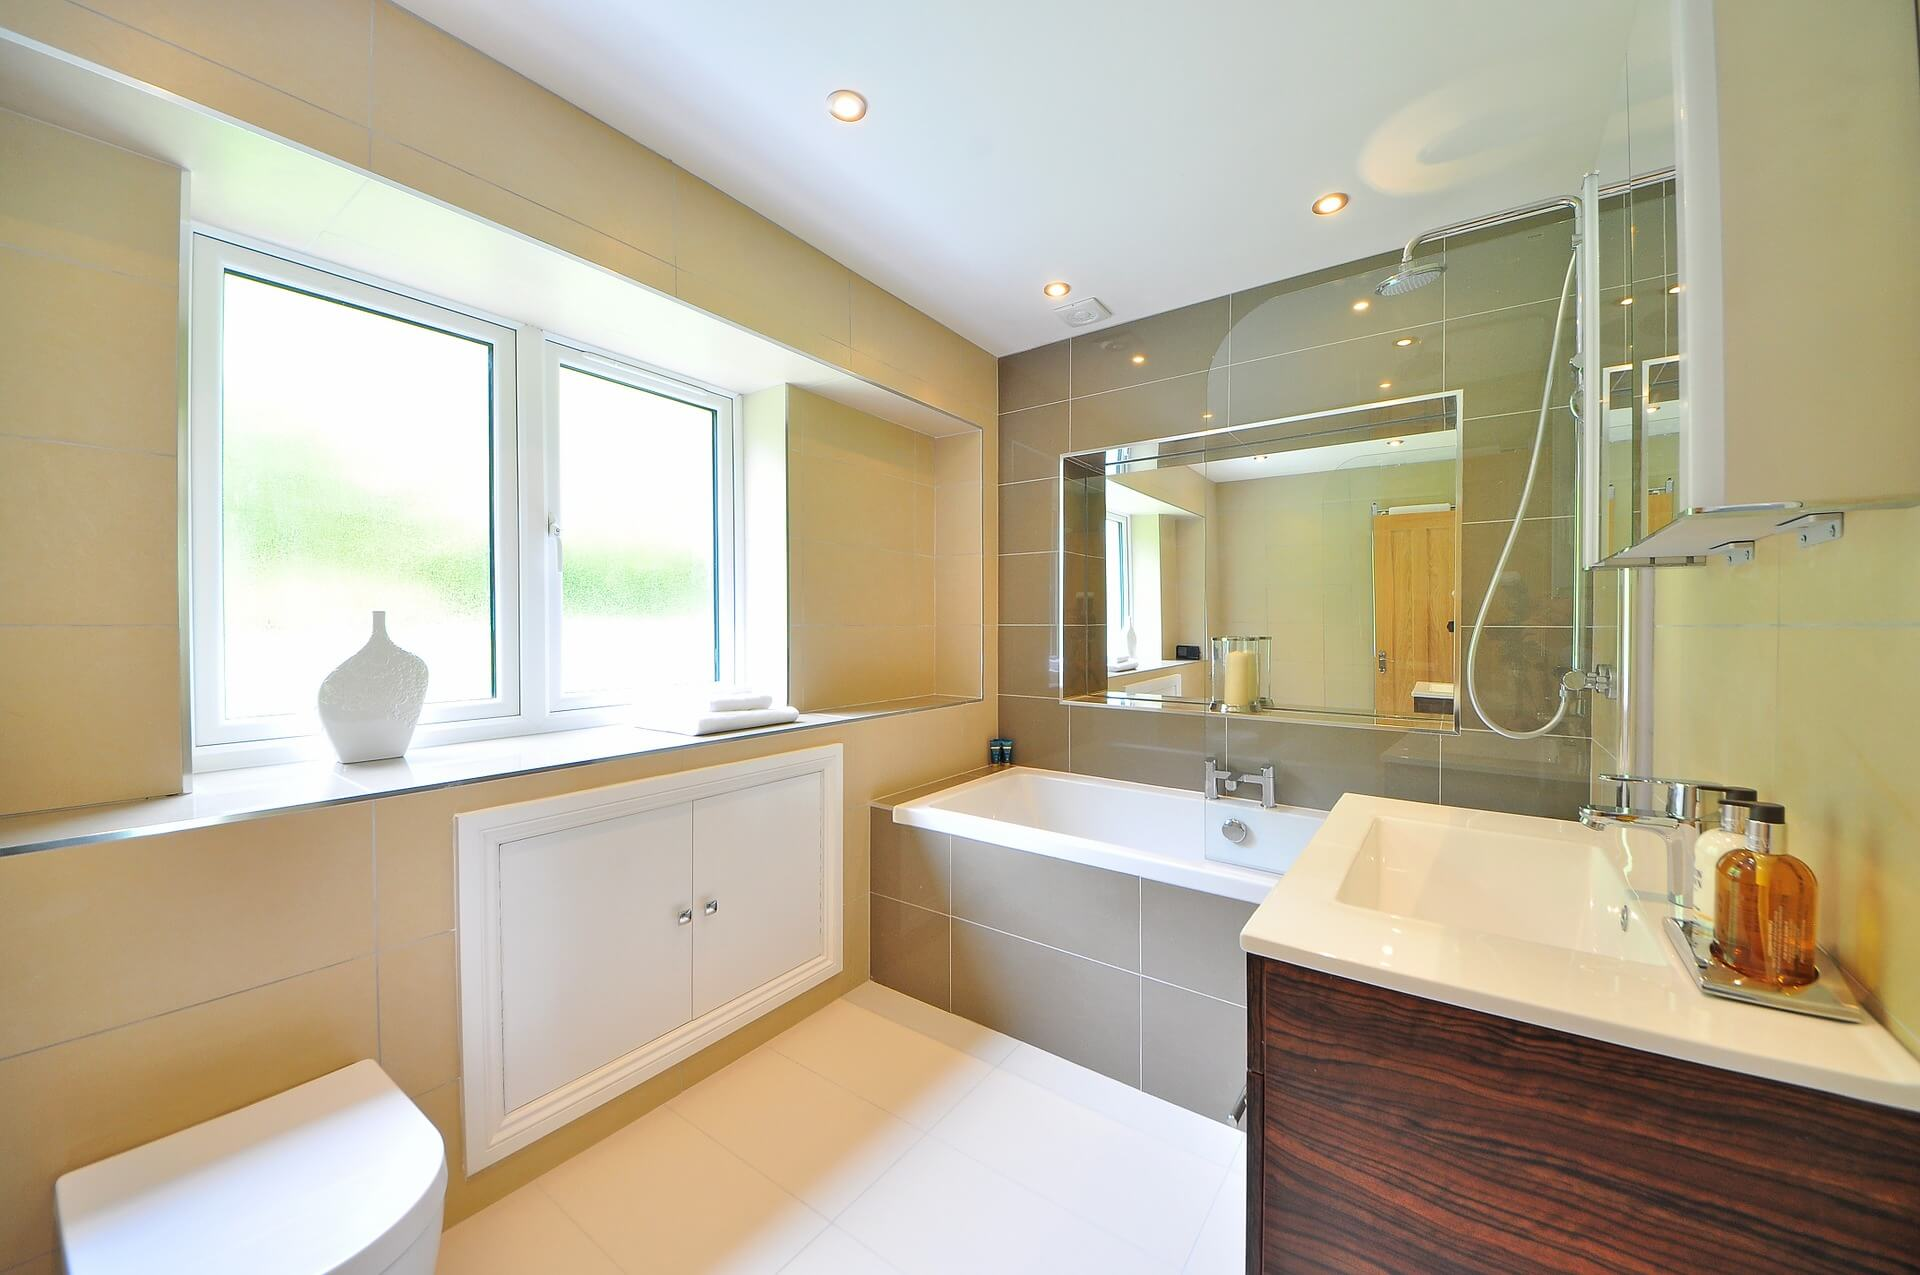 Bathroom Interior with Windows